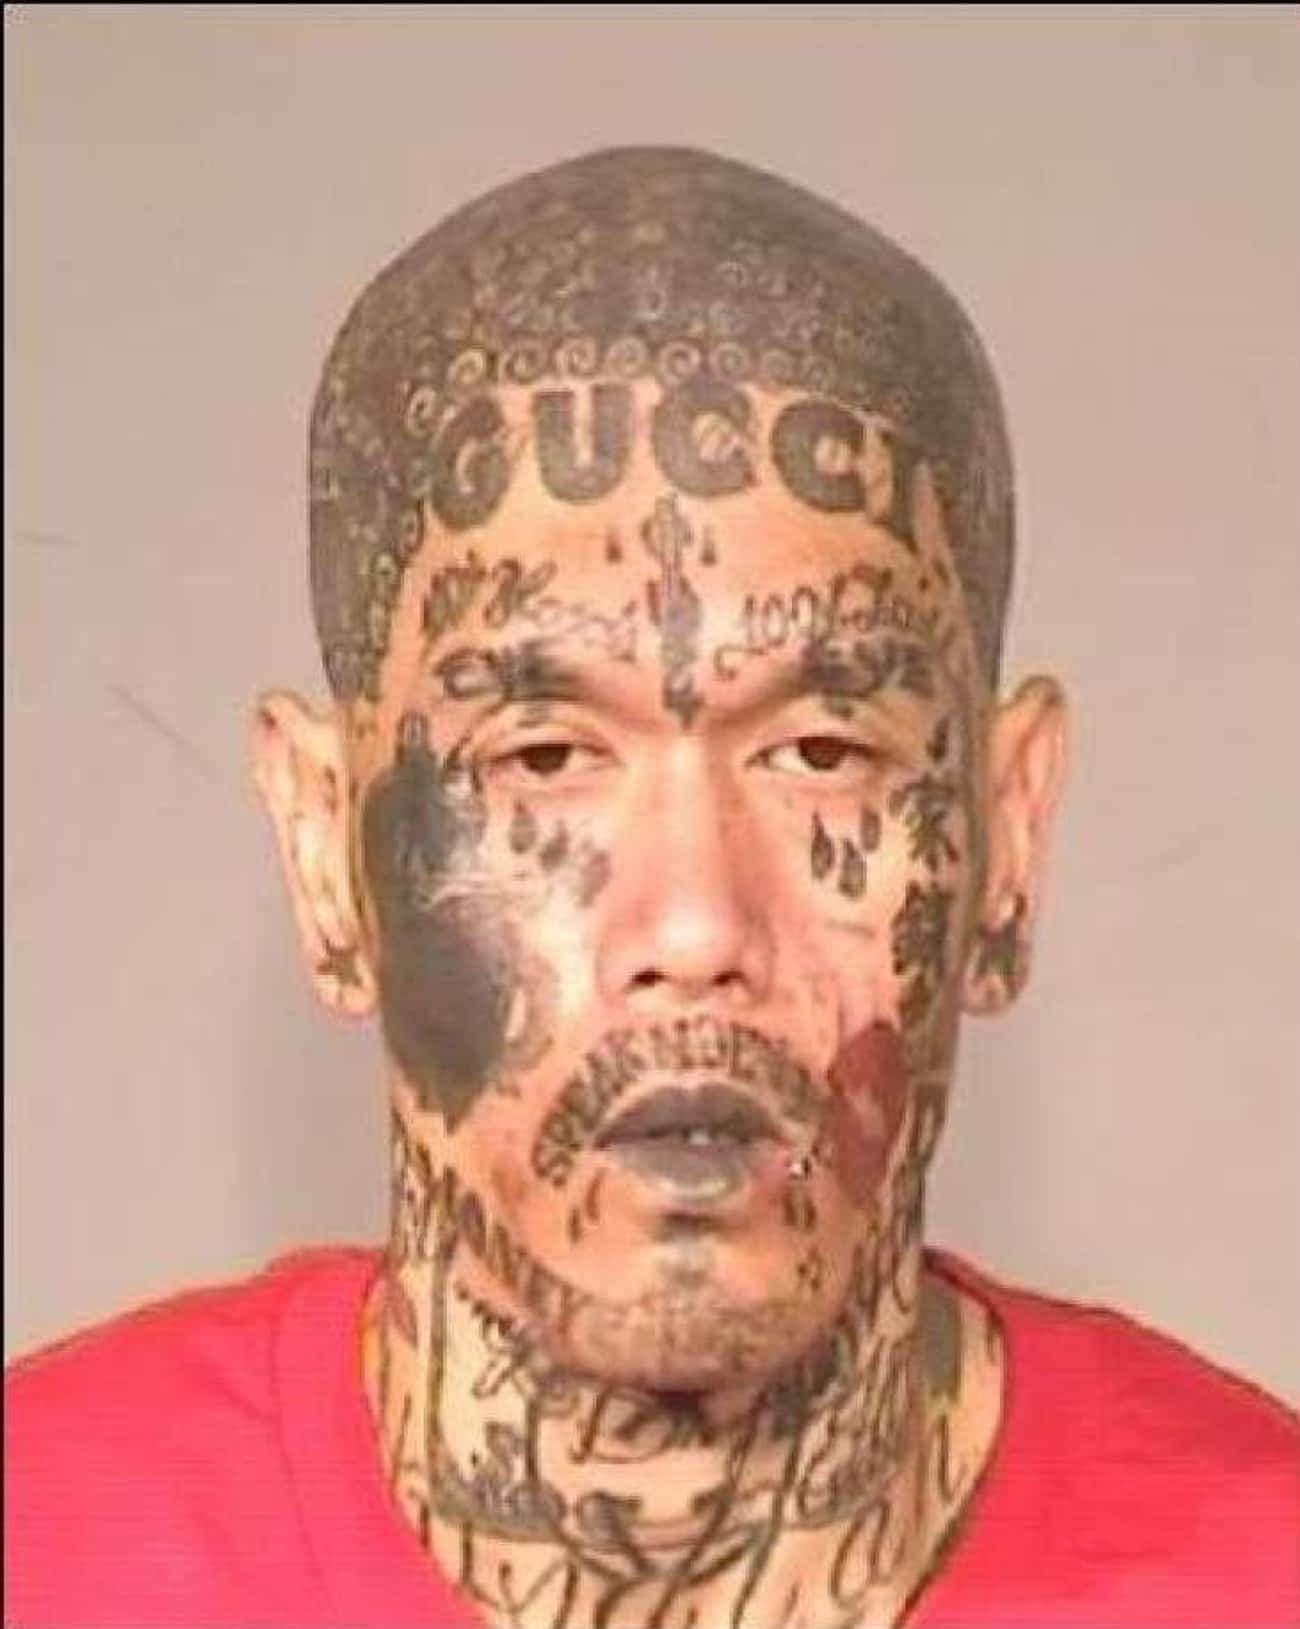 High Fashion, Low Standards is listed (or ranked) 4 on the list The Most Out-Of-Control Face Tattoos Captured By The Mugshot Camera